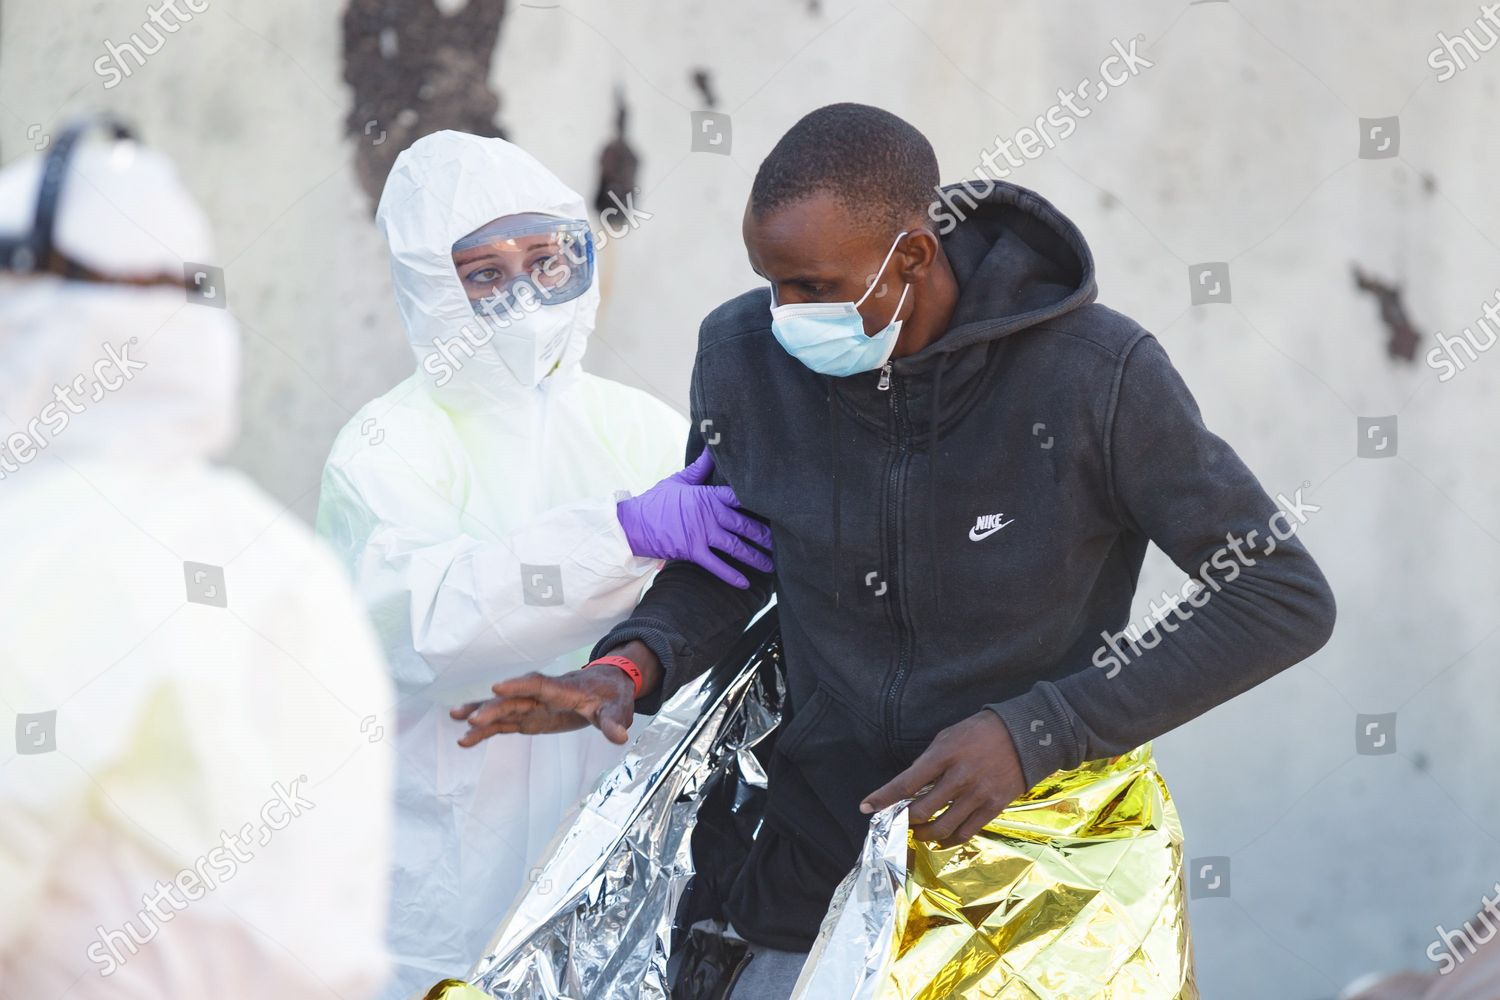 prosa Bienes globo  Health workers assist migrant who rescued sea Editorial Stock Photo - Stock  Image   Shutterstock